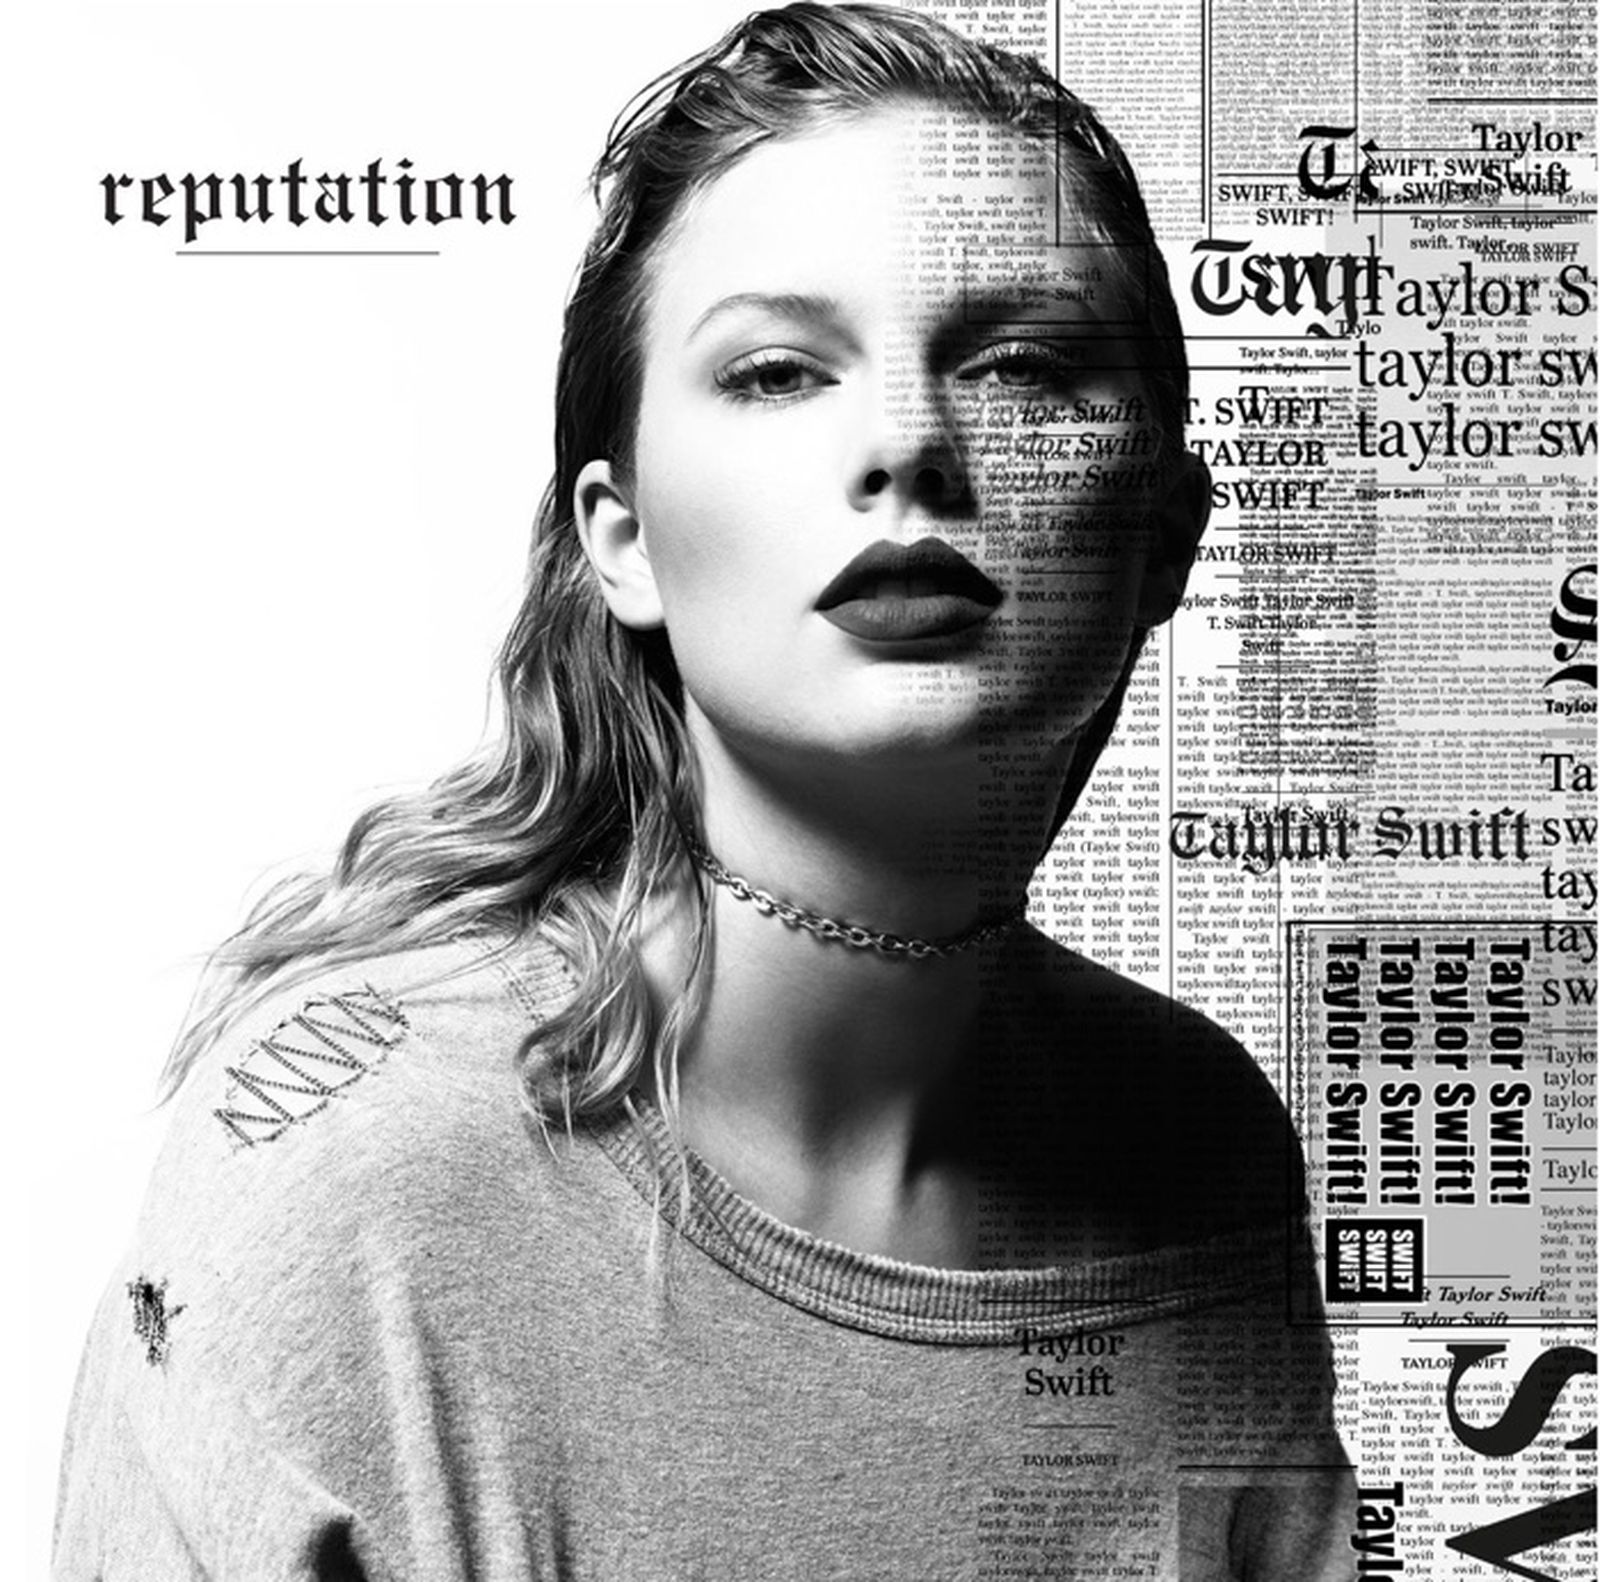 Taylor Swift S Upcoming Album Won T Be Immediately Available On Apple Music And Other Streaming Services Macrumors